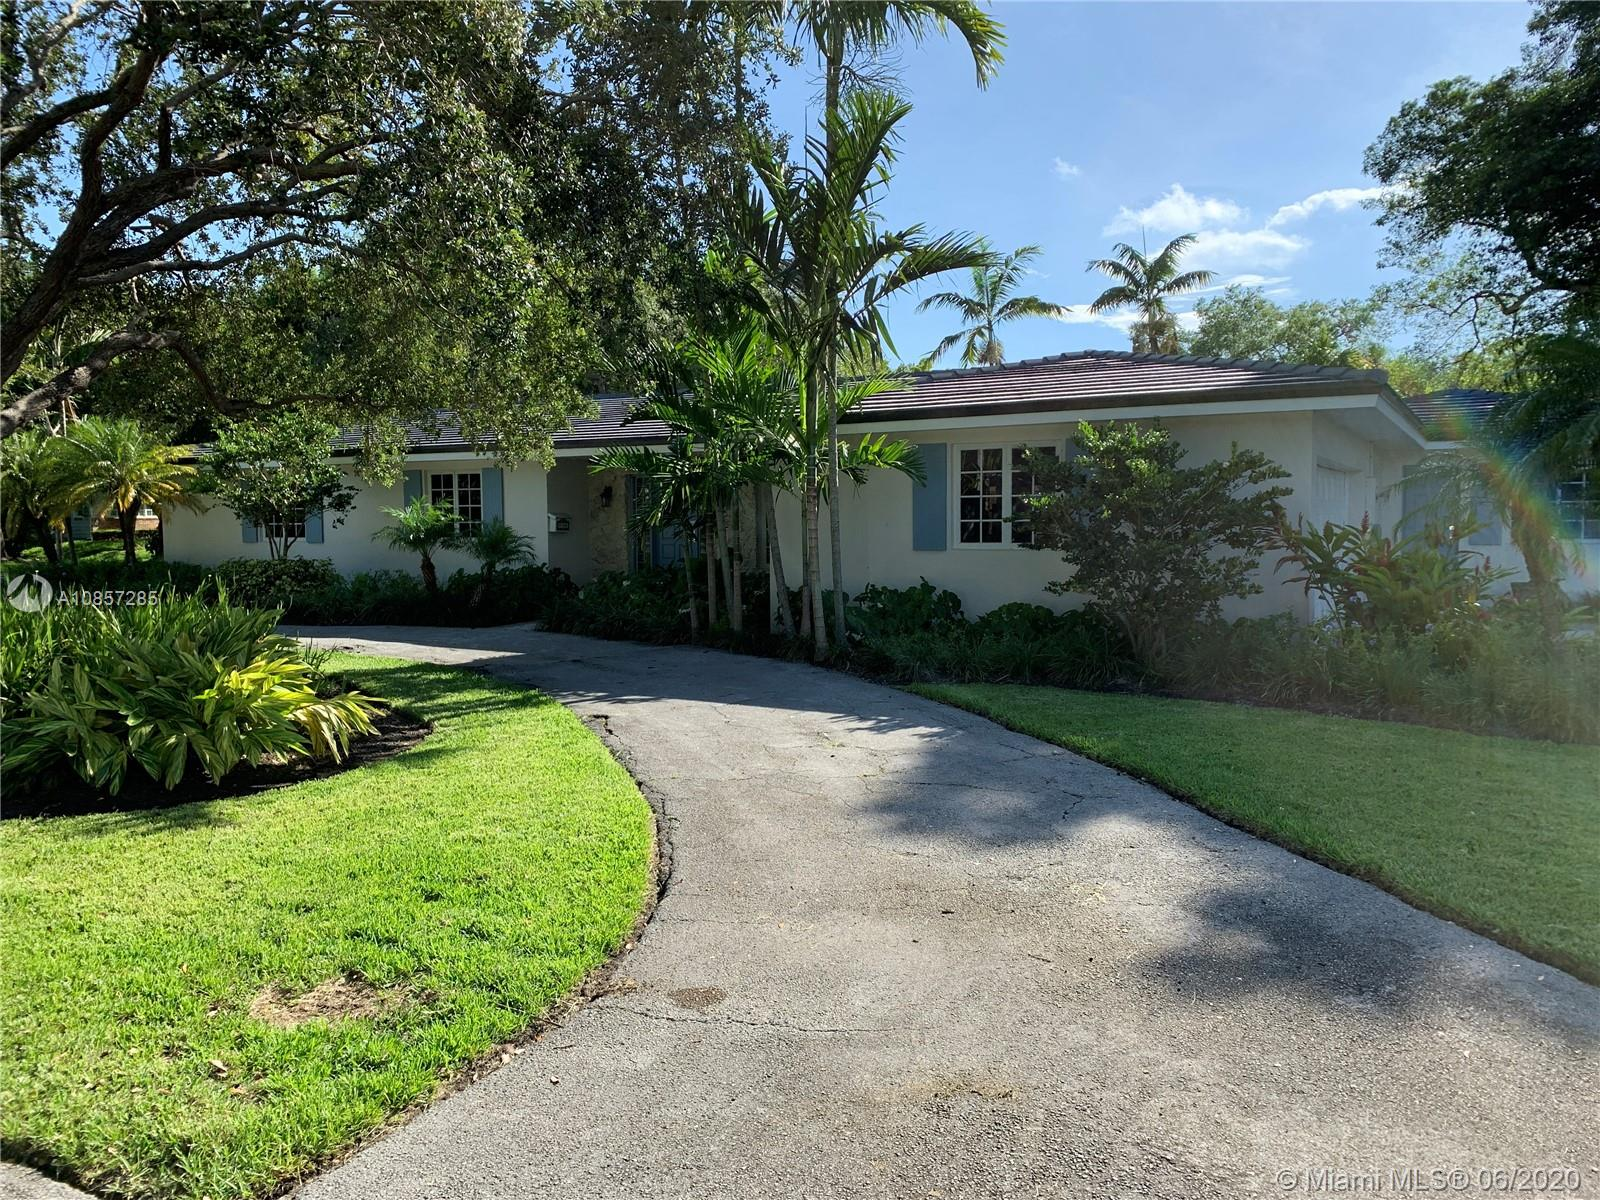 15980 SW 78th Ave, Palmetto Bay, Florida 33157, 4 Bedrooms Bedrooms, ,2 BathroomsBathrooms,Residential,For Sale,15980 SW 78th Ave,A10857285